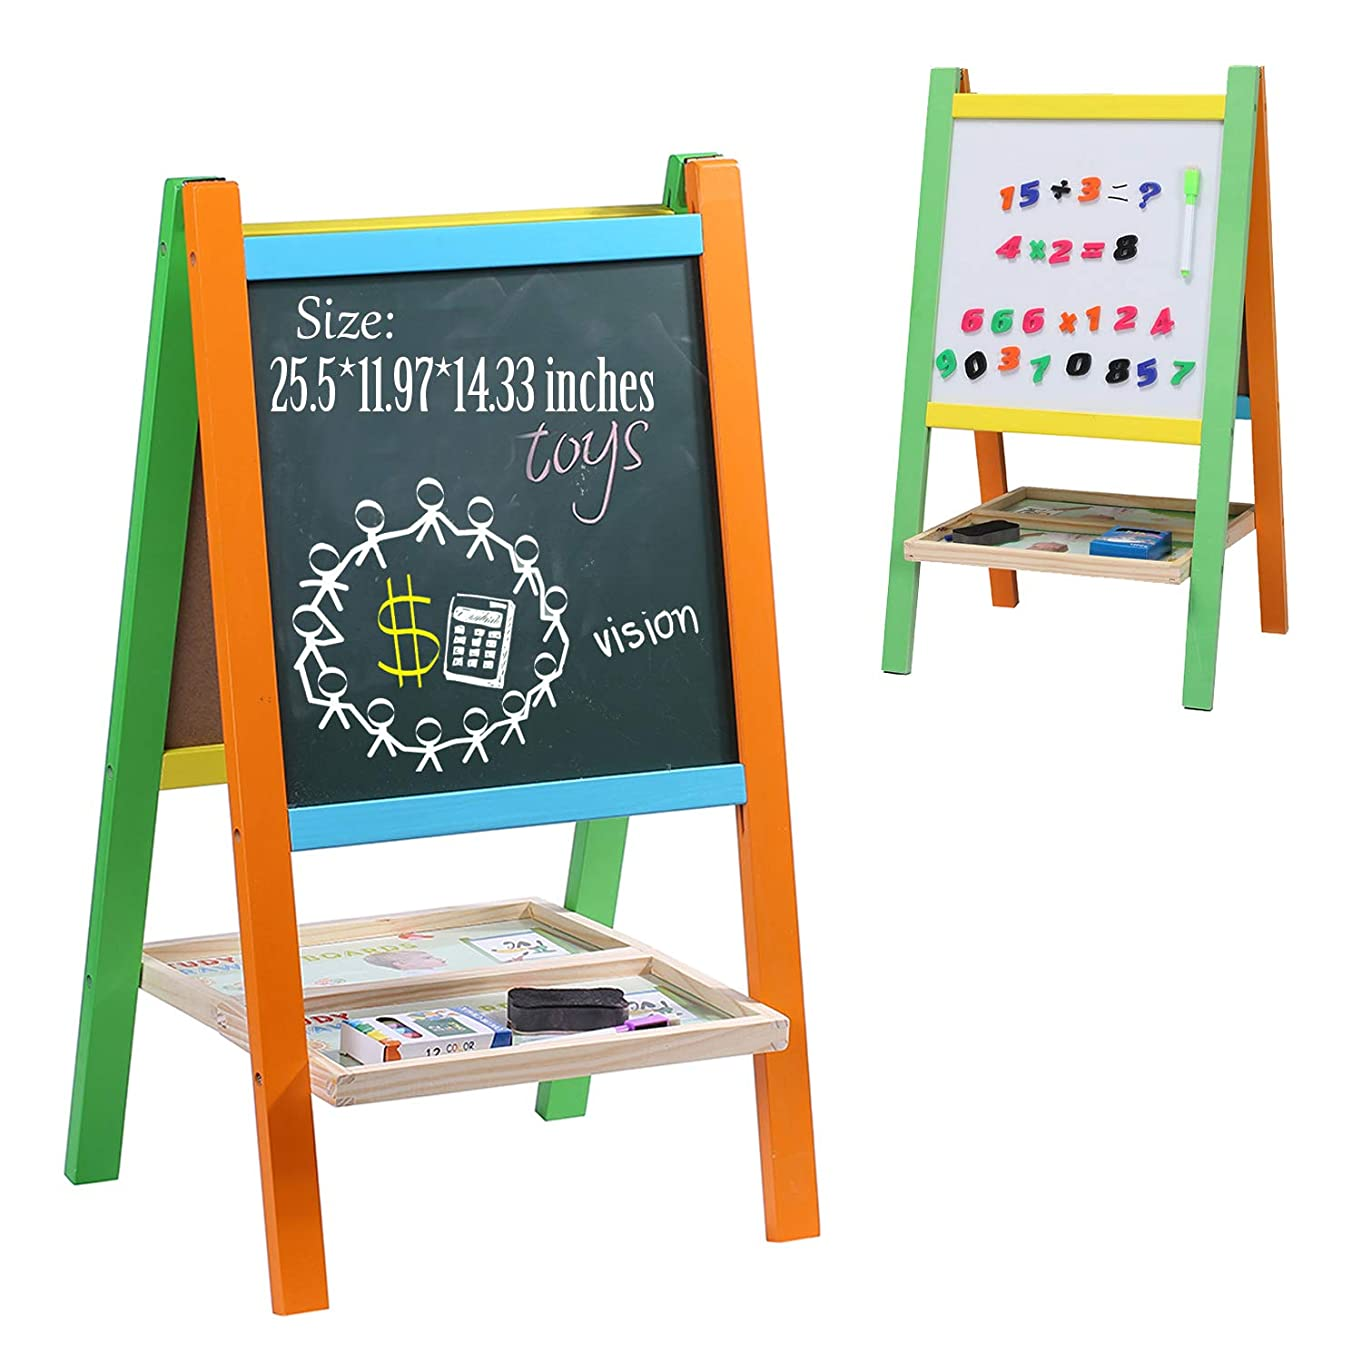 Wondertoys Kids Standing Art Easel Board with Whiteboard and Chalkboard Magnetic Alphabet Toddlers Gifts for 2 to 12 Years Old Boys and Girls